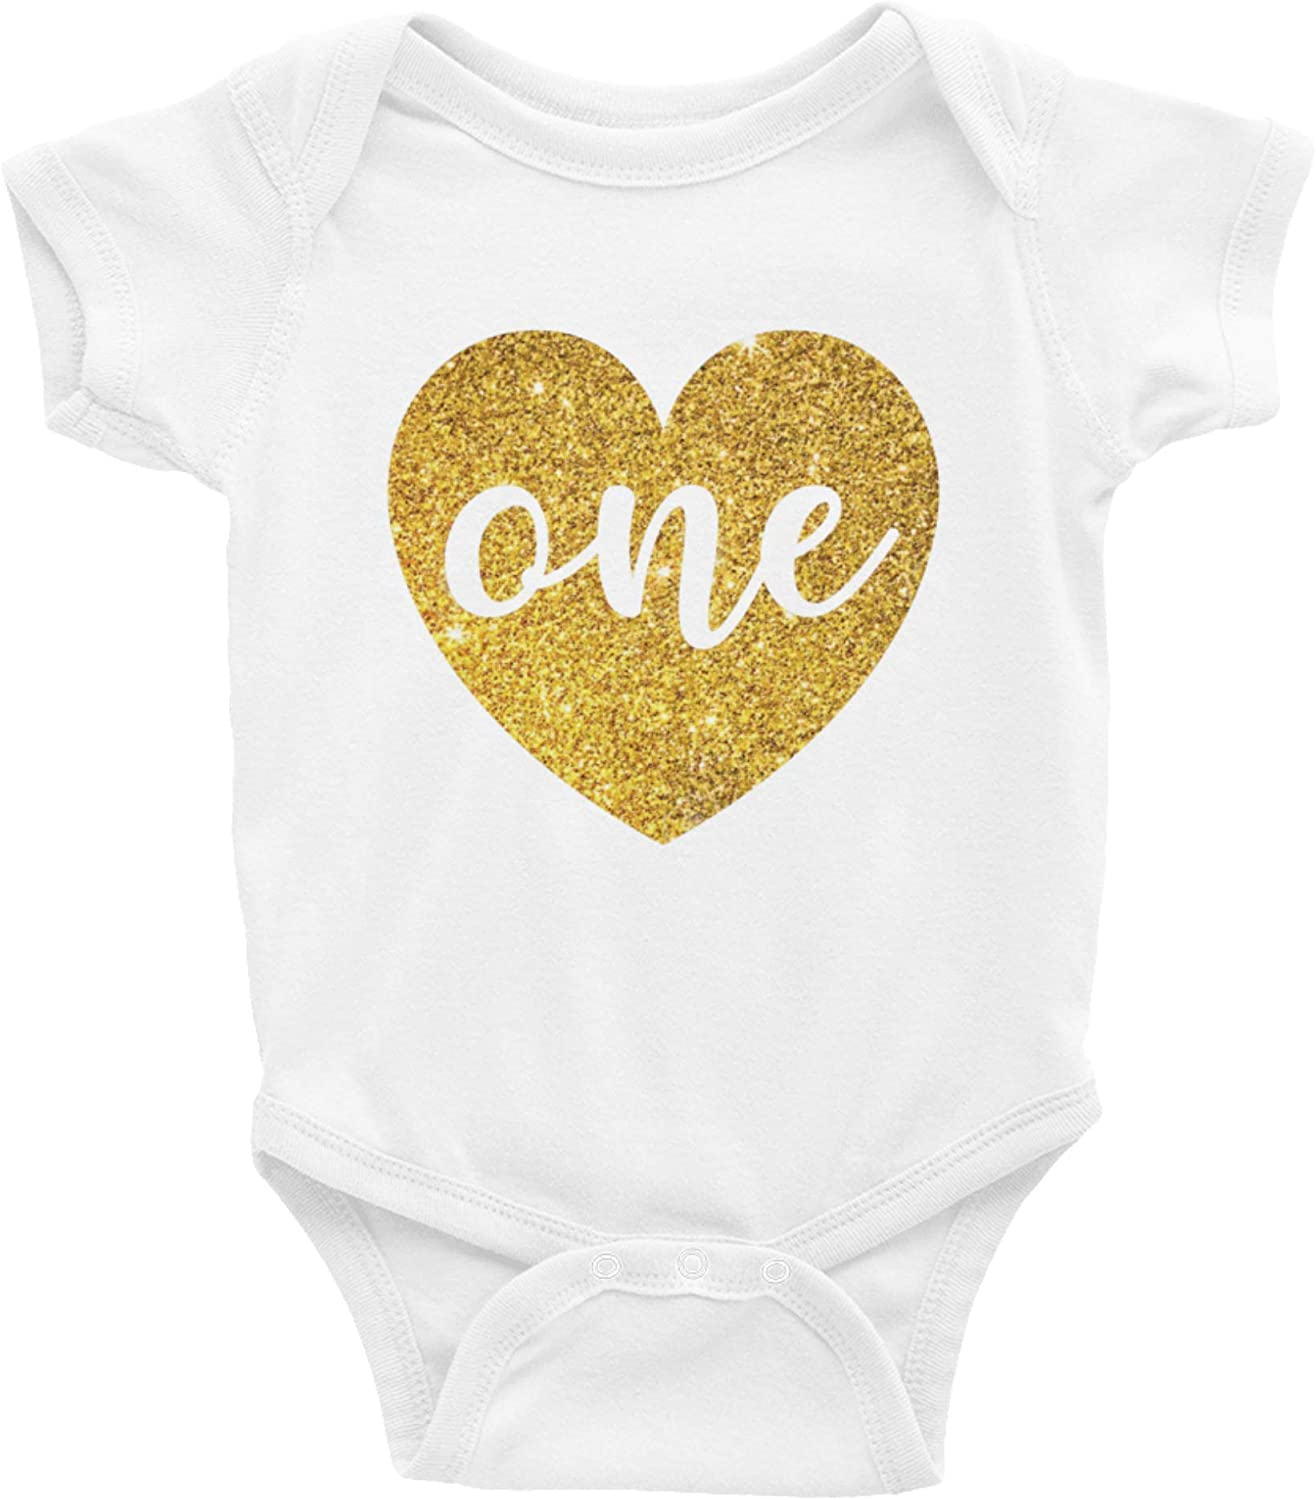 One Year Old Glitter Onesie One in Real Non Shed Gold Glitter Rainbow Squared Baby Girls First Birthday Outfit